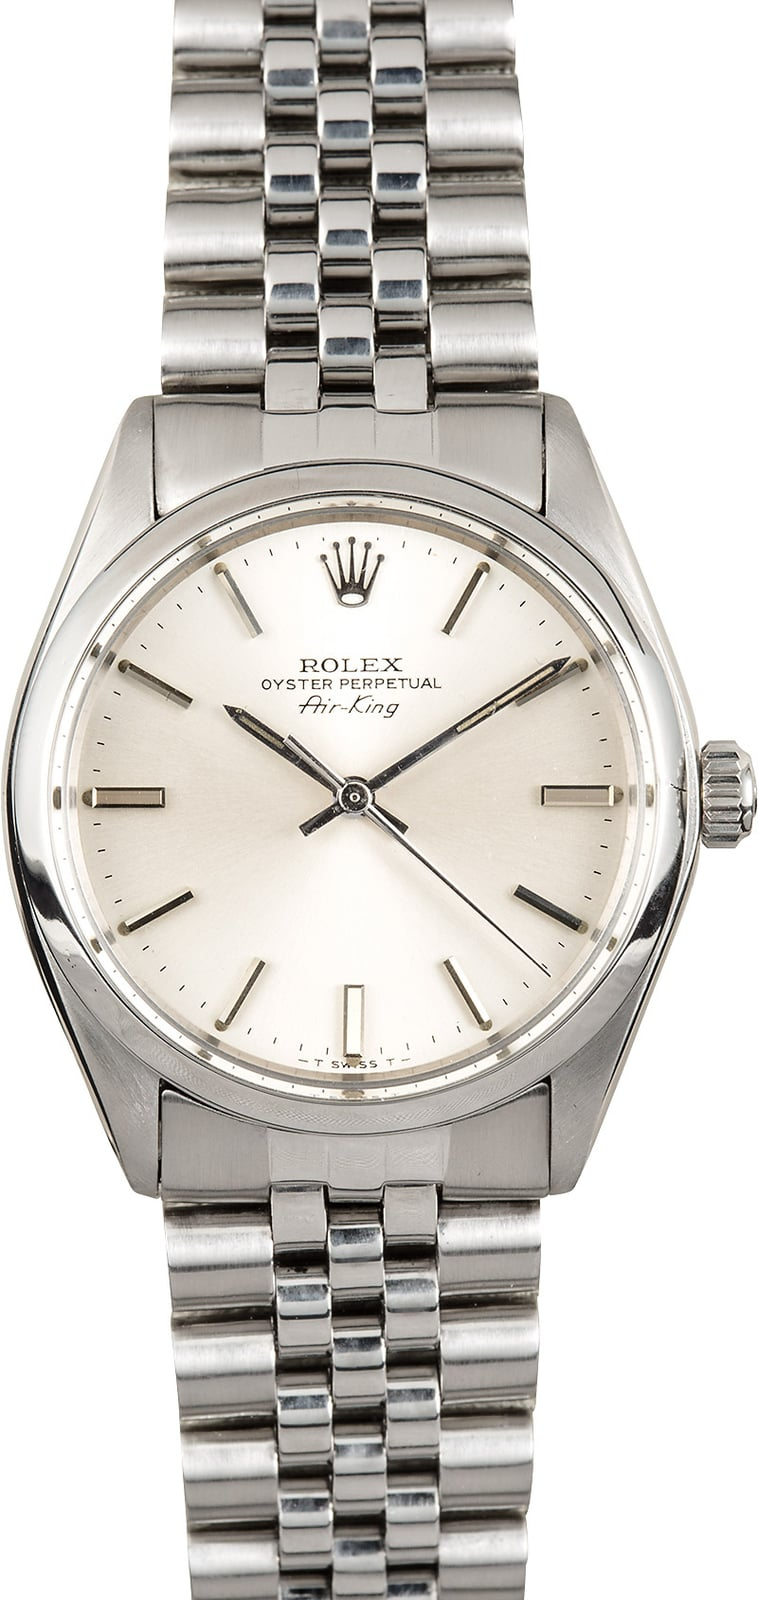 Rolex air king 5500 jubilee bracelet for Rolex air king